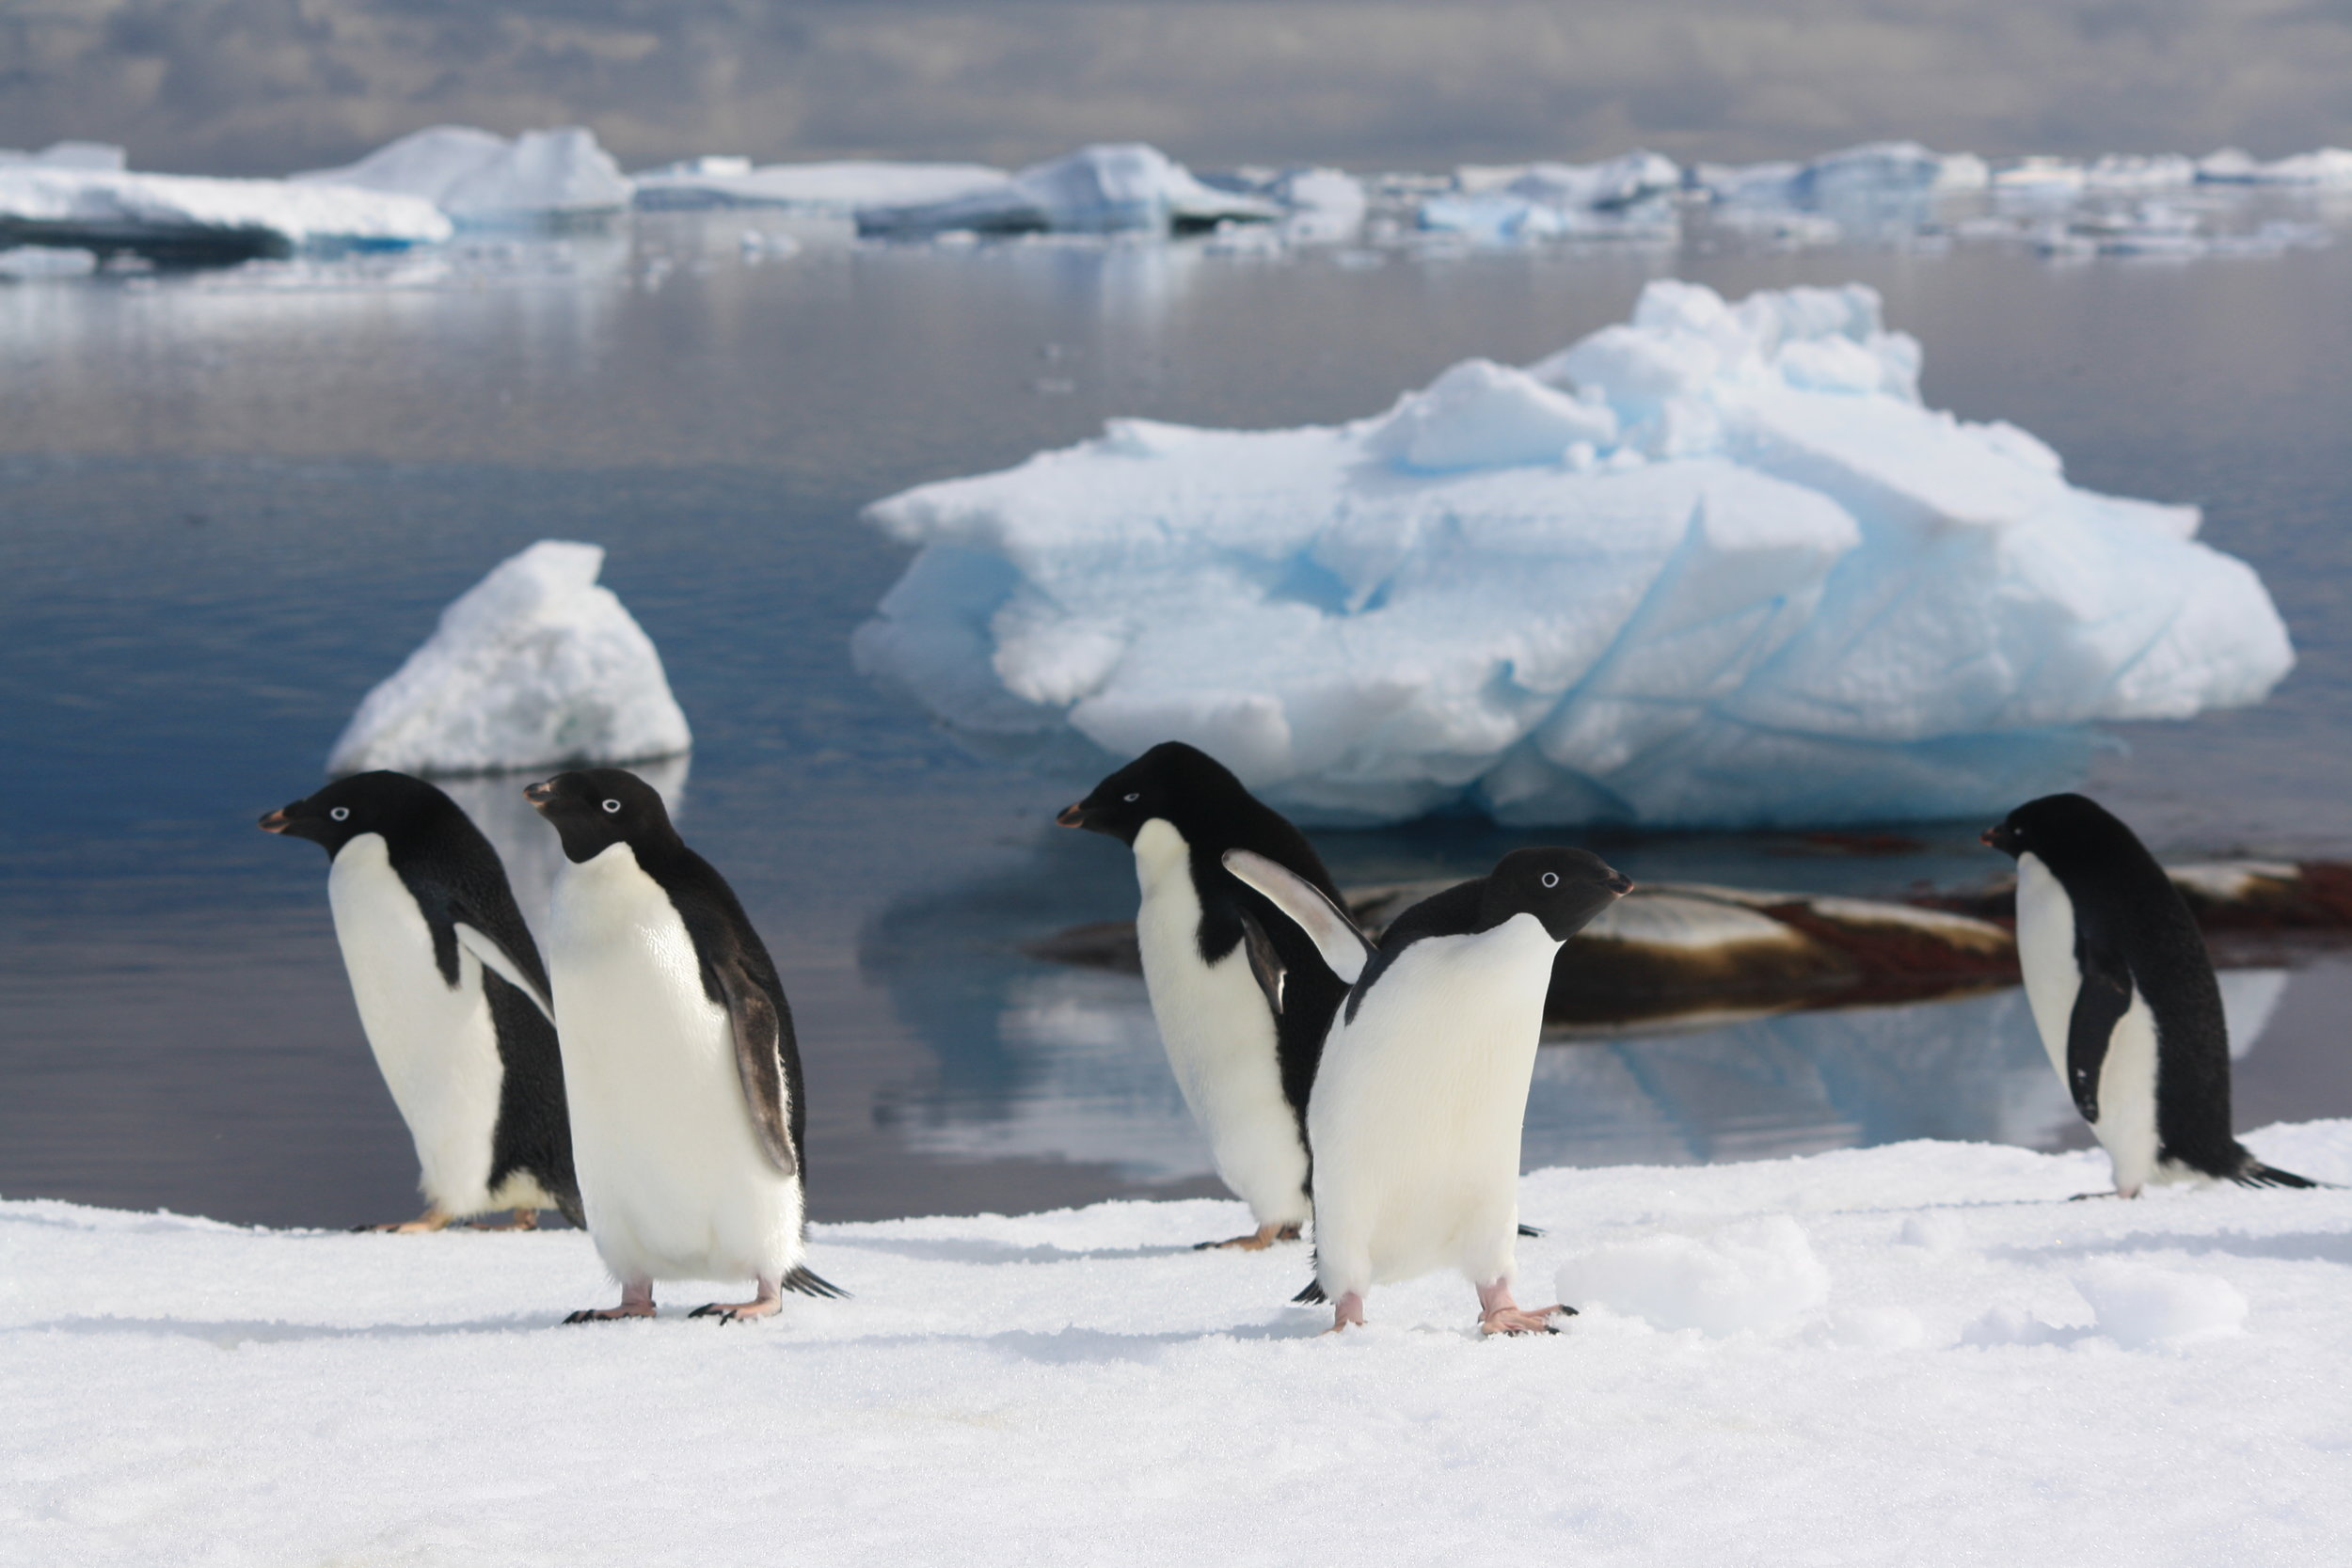 Adélie penguins live in the Antarctic sea ice zone, one of the most rapidly changing environments on earth.